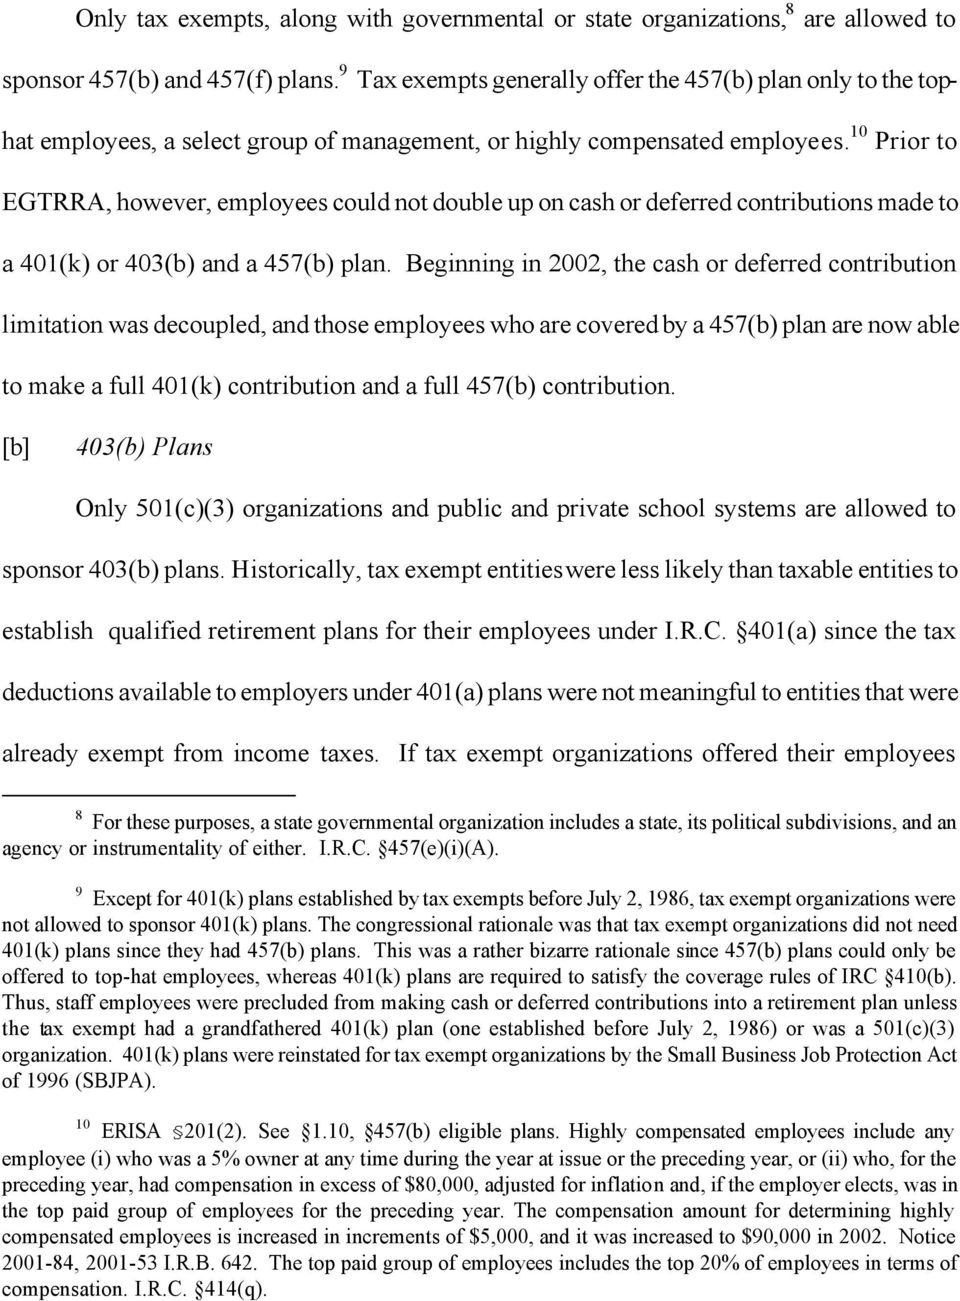 10 Prior to EGTRRA, however, employees could not double up on cash or deferred contributions made to a 401(k) or 403(b) and a 457(b) plan.